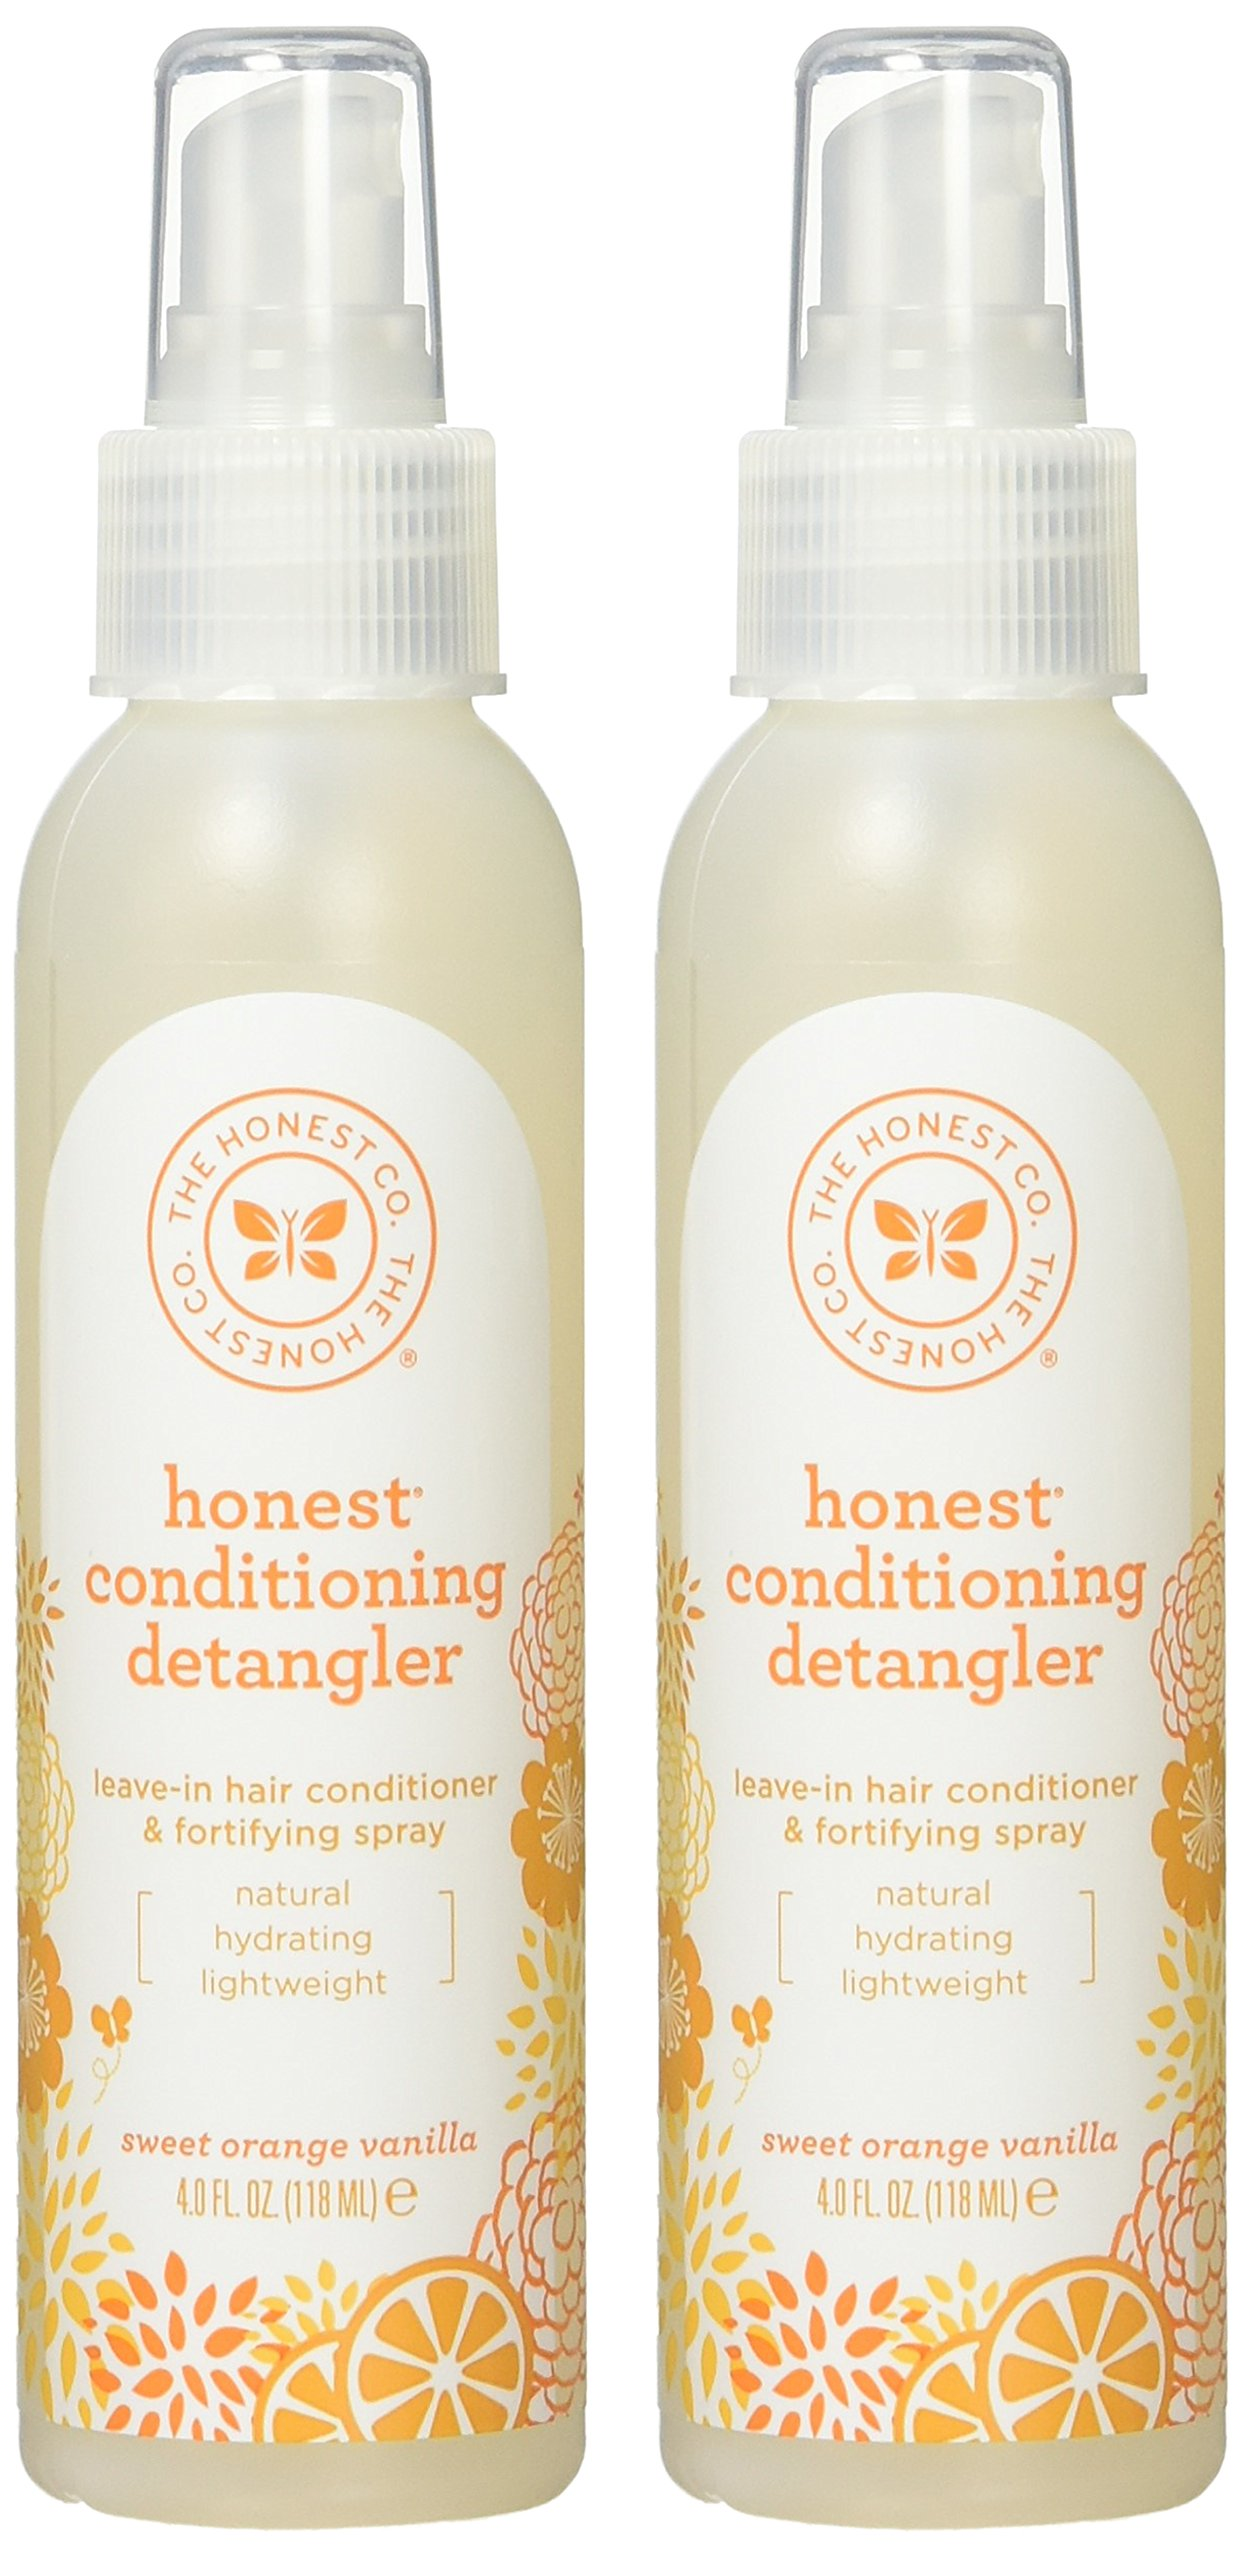 The Honest Company - Conditioning Detangler, Leave-In Conditioner and Fortifying Spray - Sweet Orange Vanilla, 4 fl oz (2 Pack) by The Honest Company (Image #2)